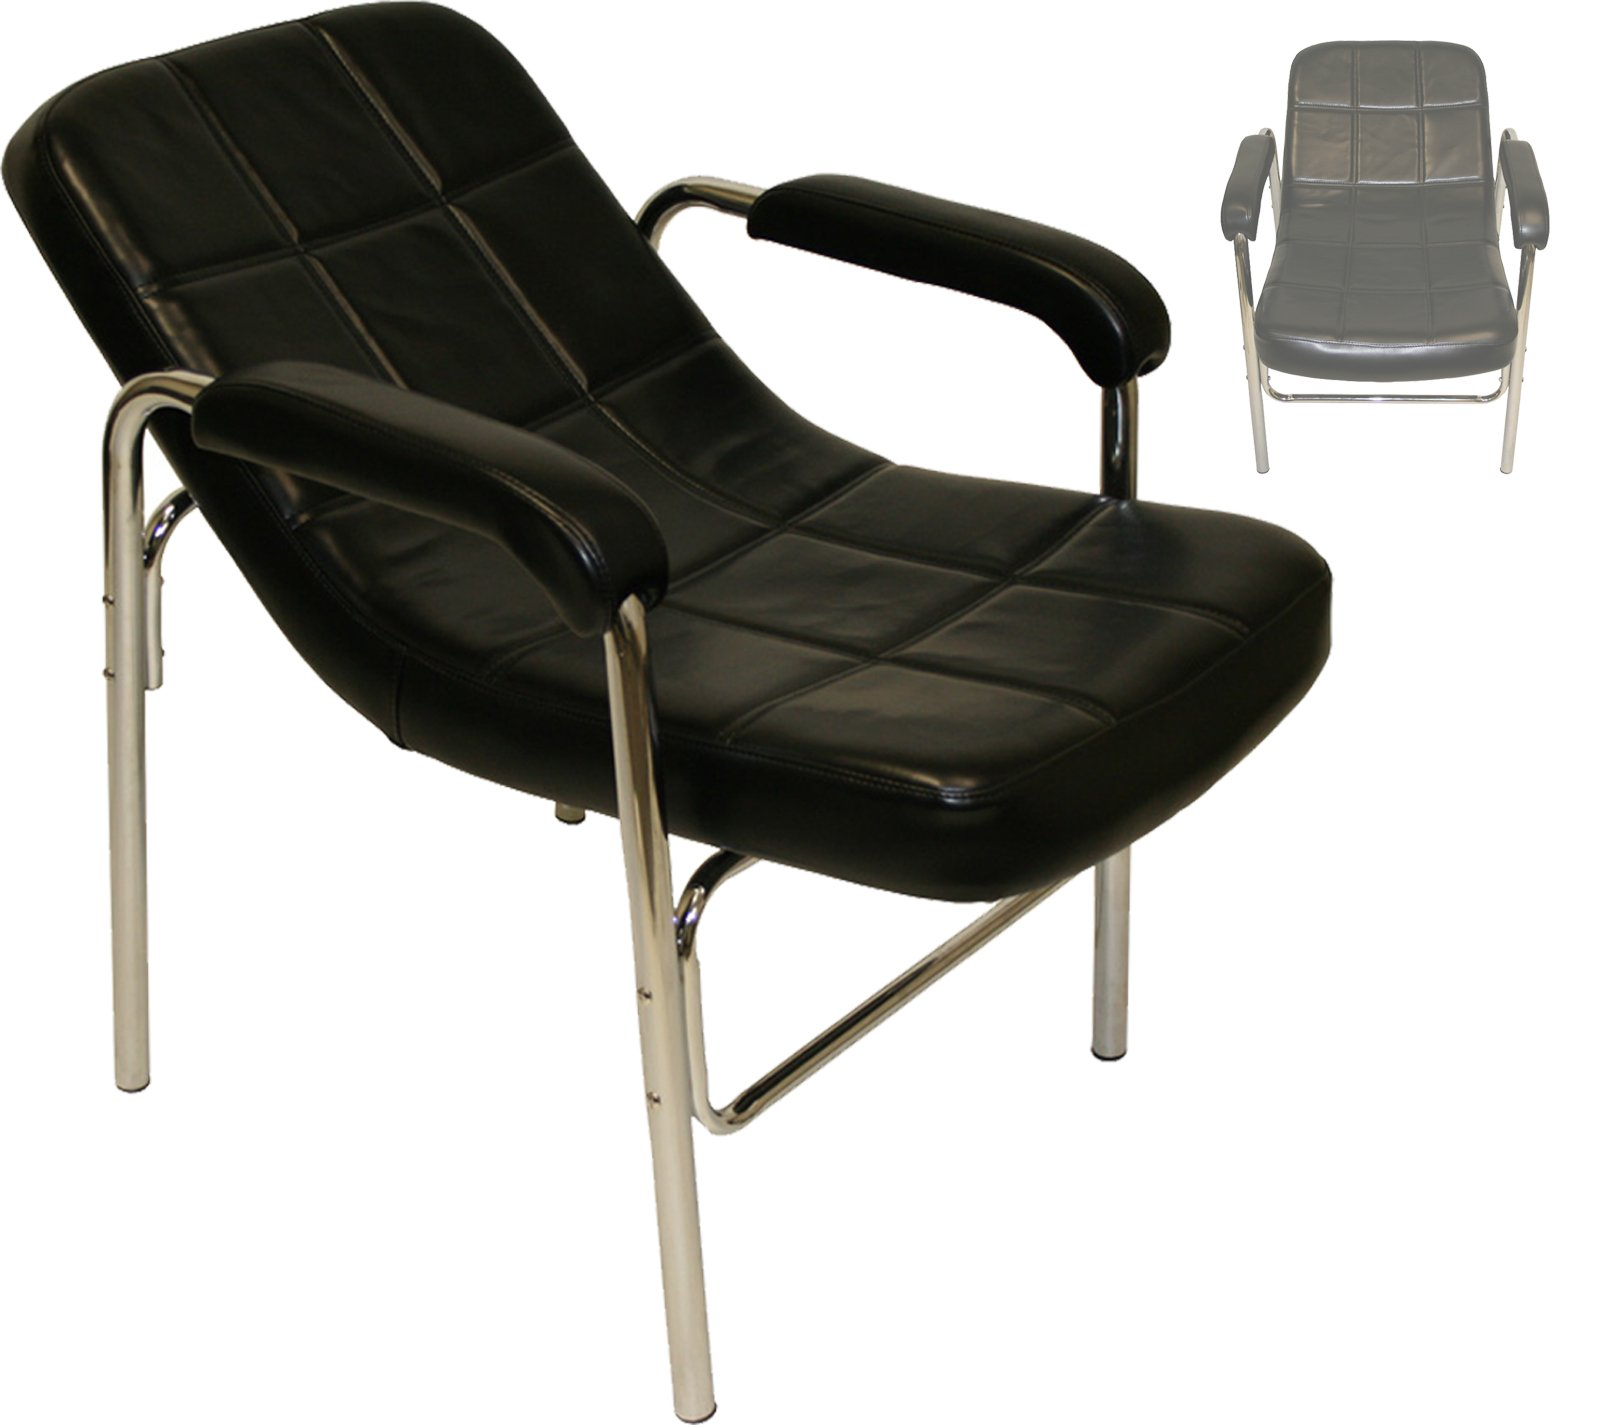 LCL Beauty Comfort-Curve Contemporary Sling-Back Style Reclined Shampoo Chair